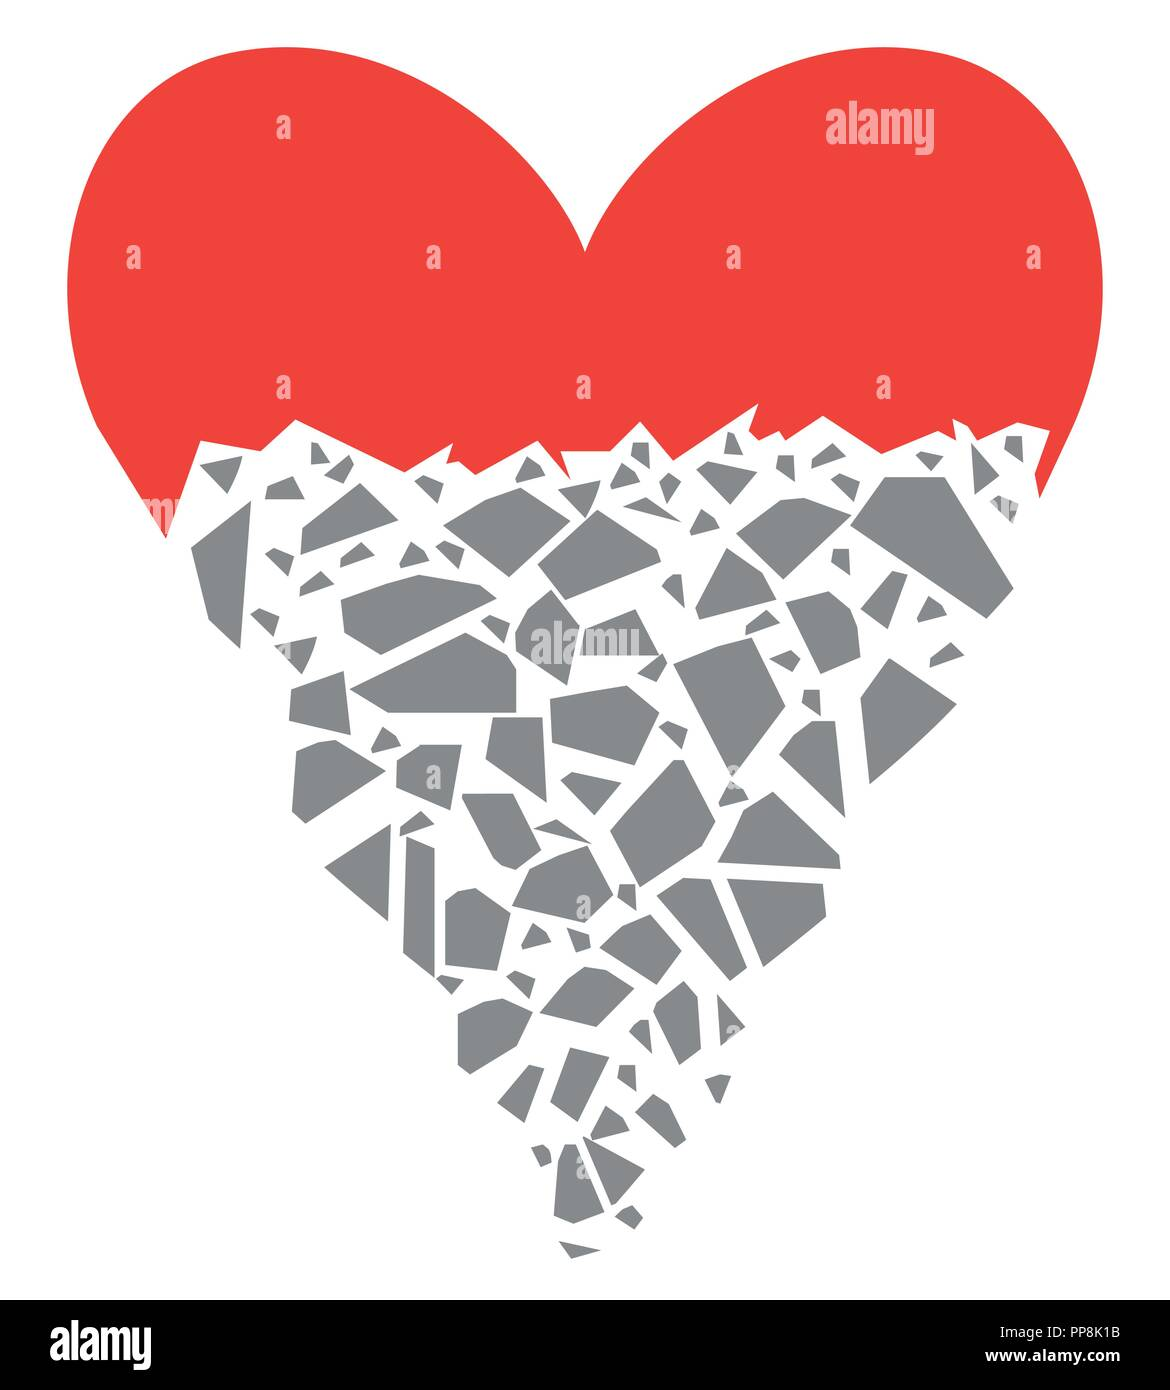 The red heart is destroyed by gray shards. Conceptual background with a contrite heart. Flat style. Vector illustration. - Stock Image